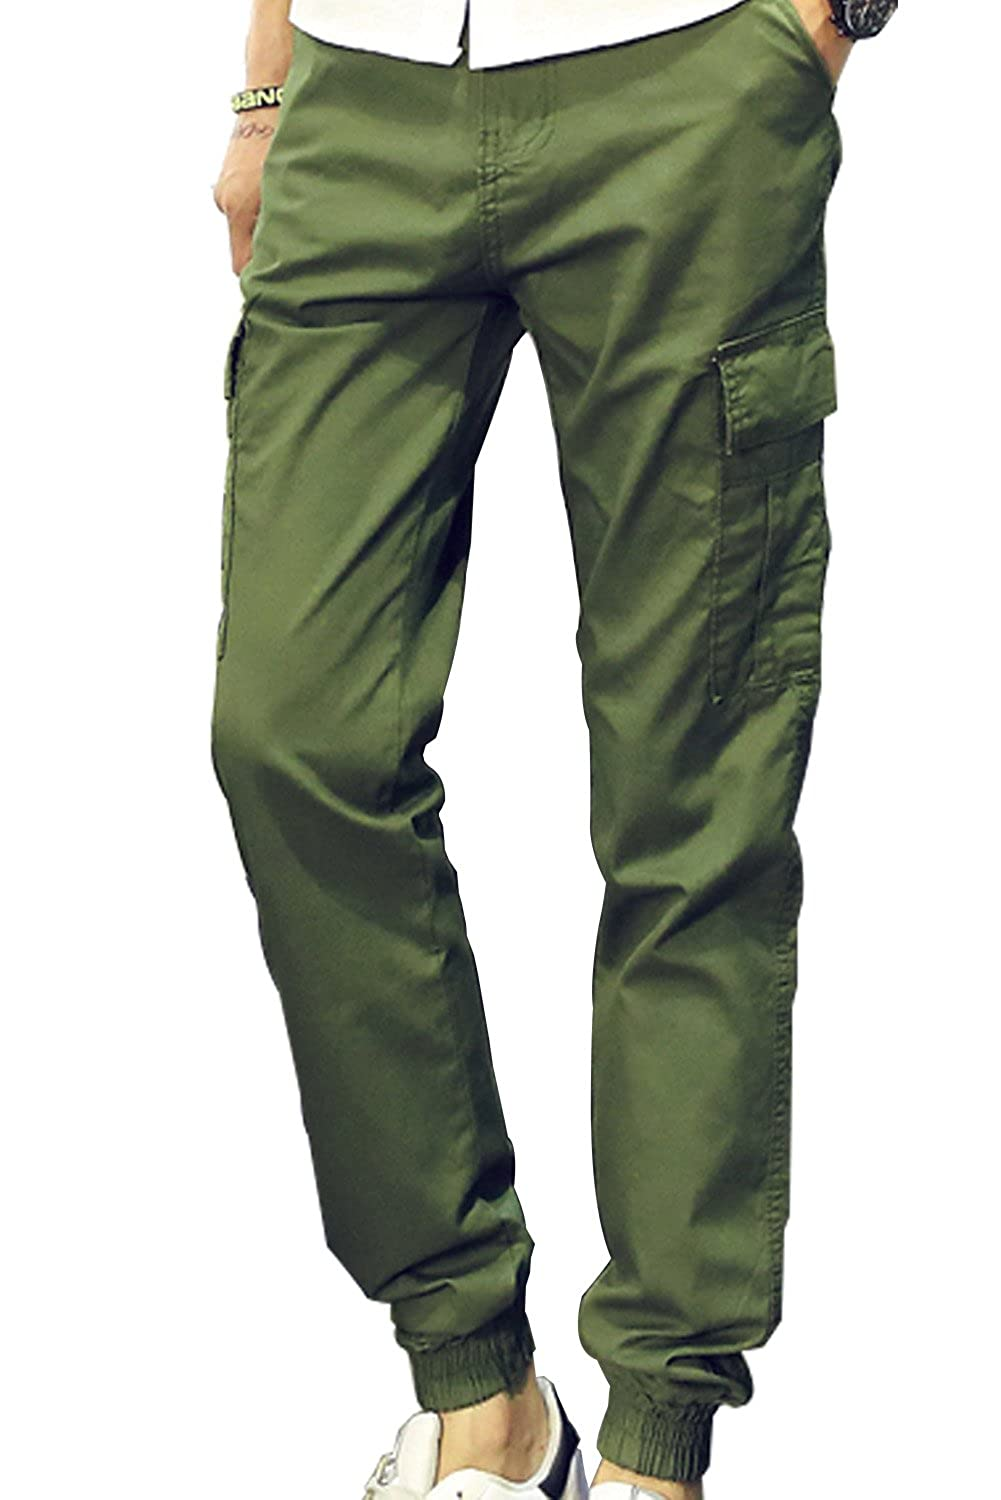 GAGA Mens Cargo Pants Casual Jogger Pant Slim Fit Chino Trousers